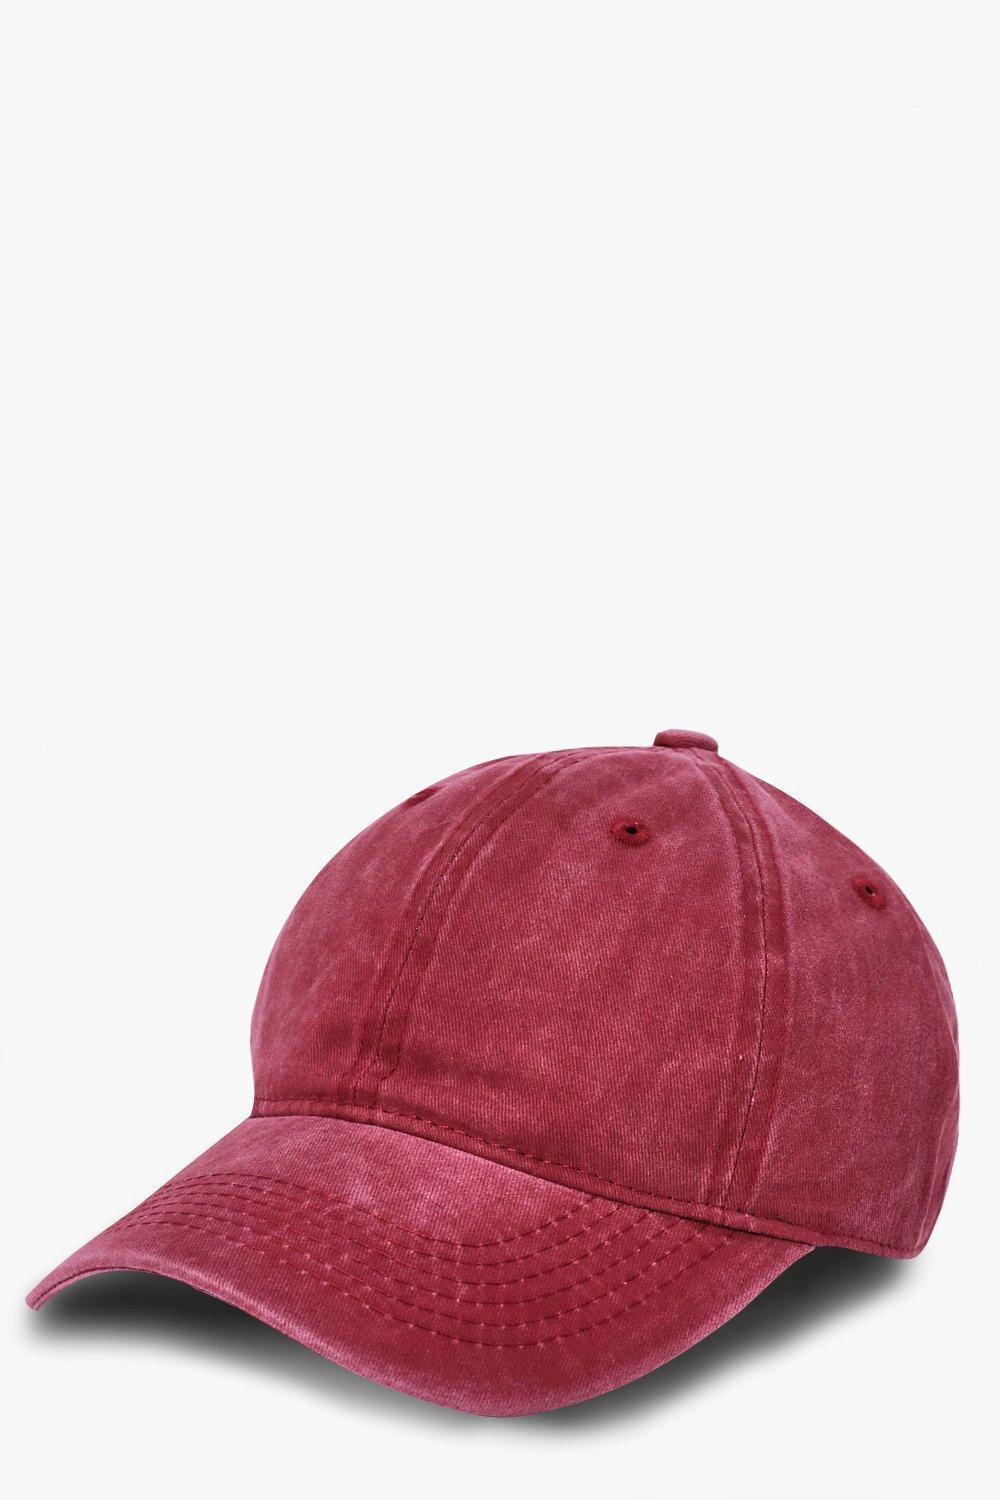 Washed Cap - red - Red Washed Cap - red